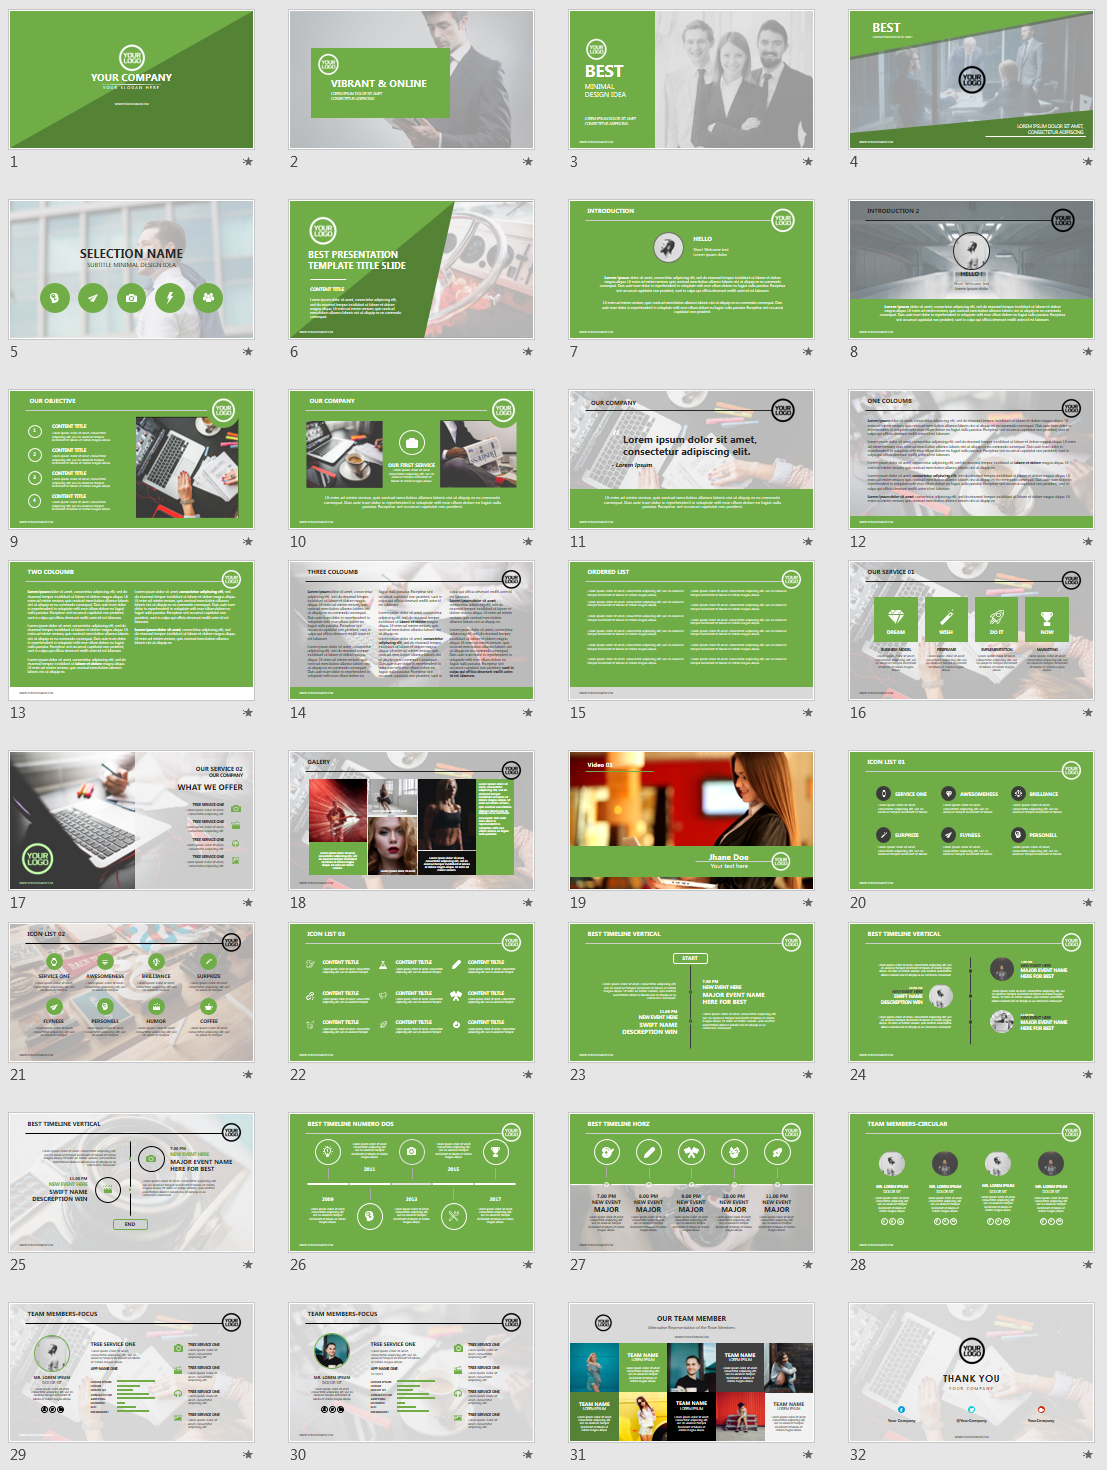 Xinemax Video Templates PRO tutorial – TriacMe Review